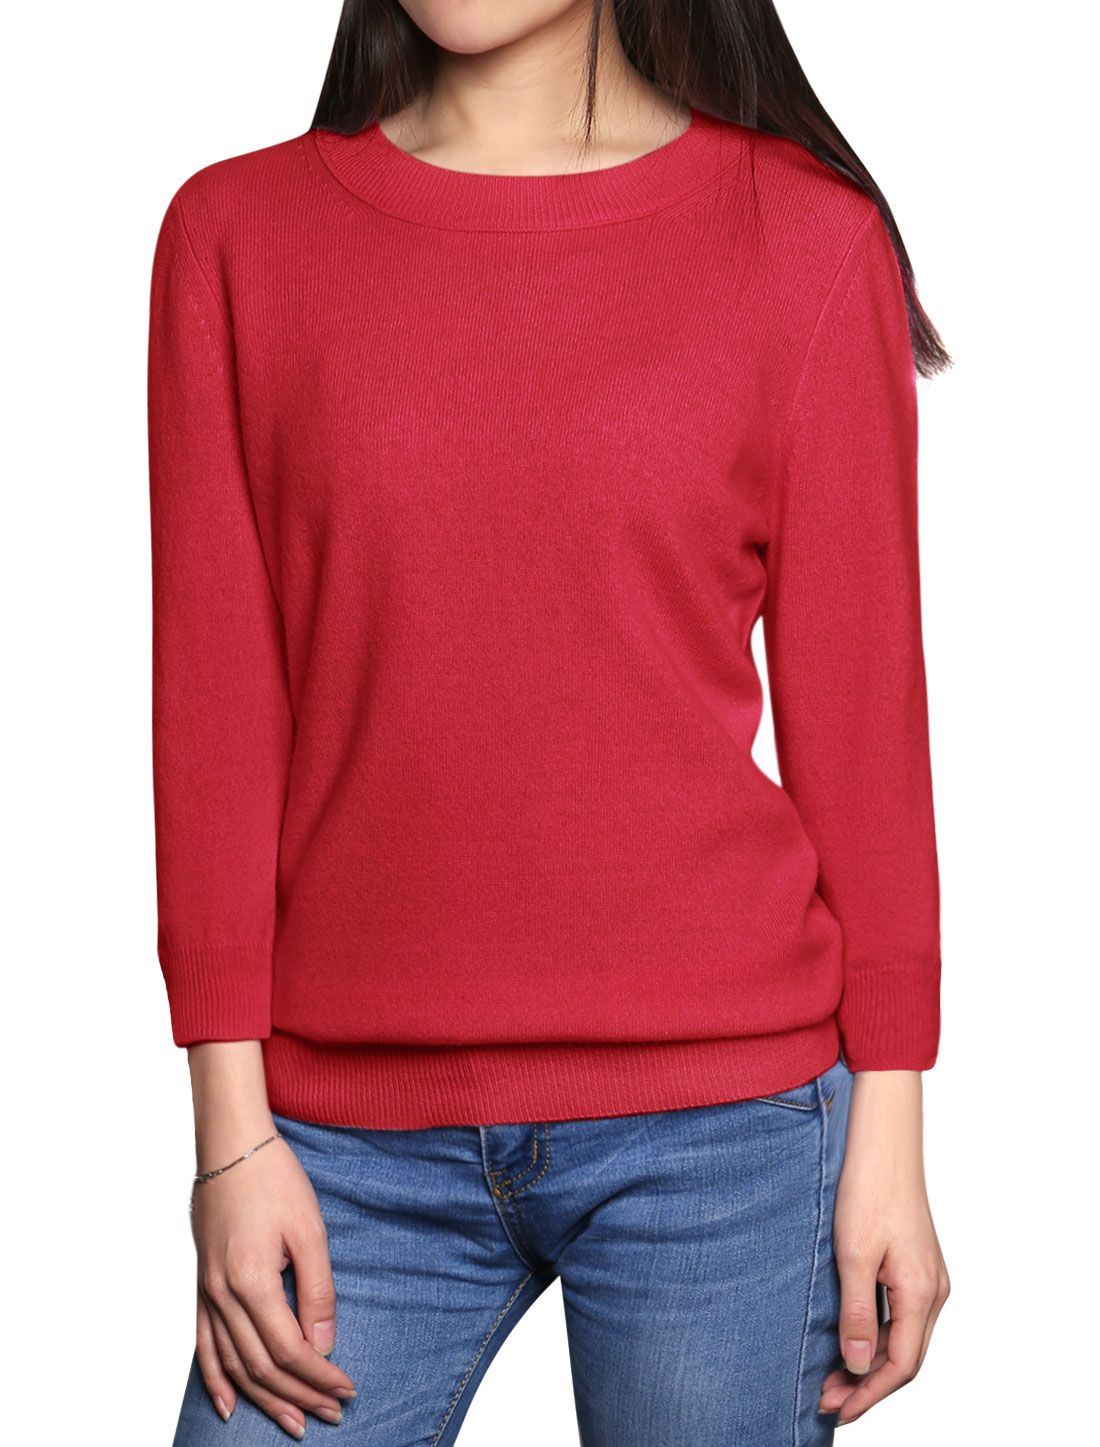 Ladies 3/4 Sleeves Slim Fit Sweater Jumper Red M